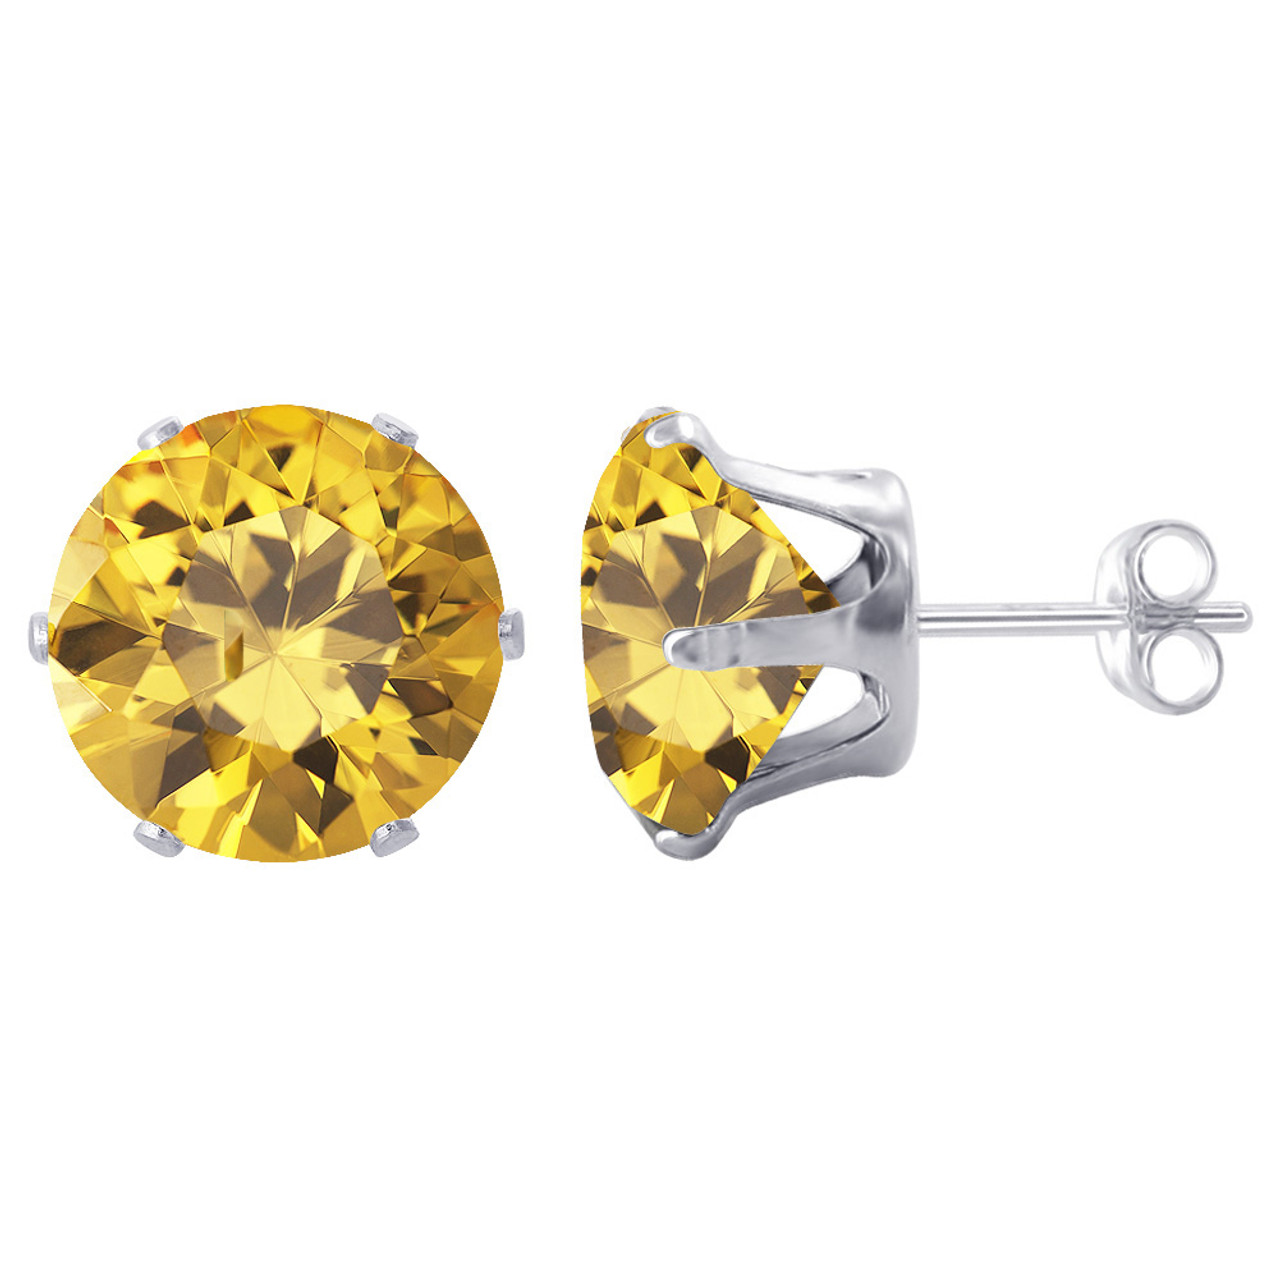 11mm Round Yellow CZ Stud Earrings